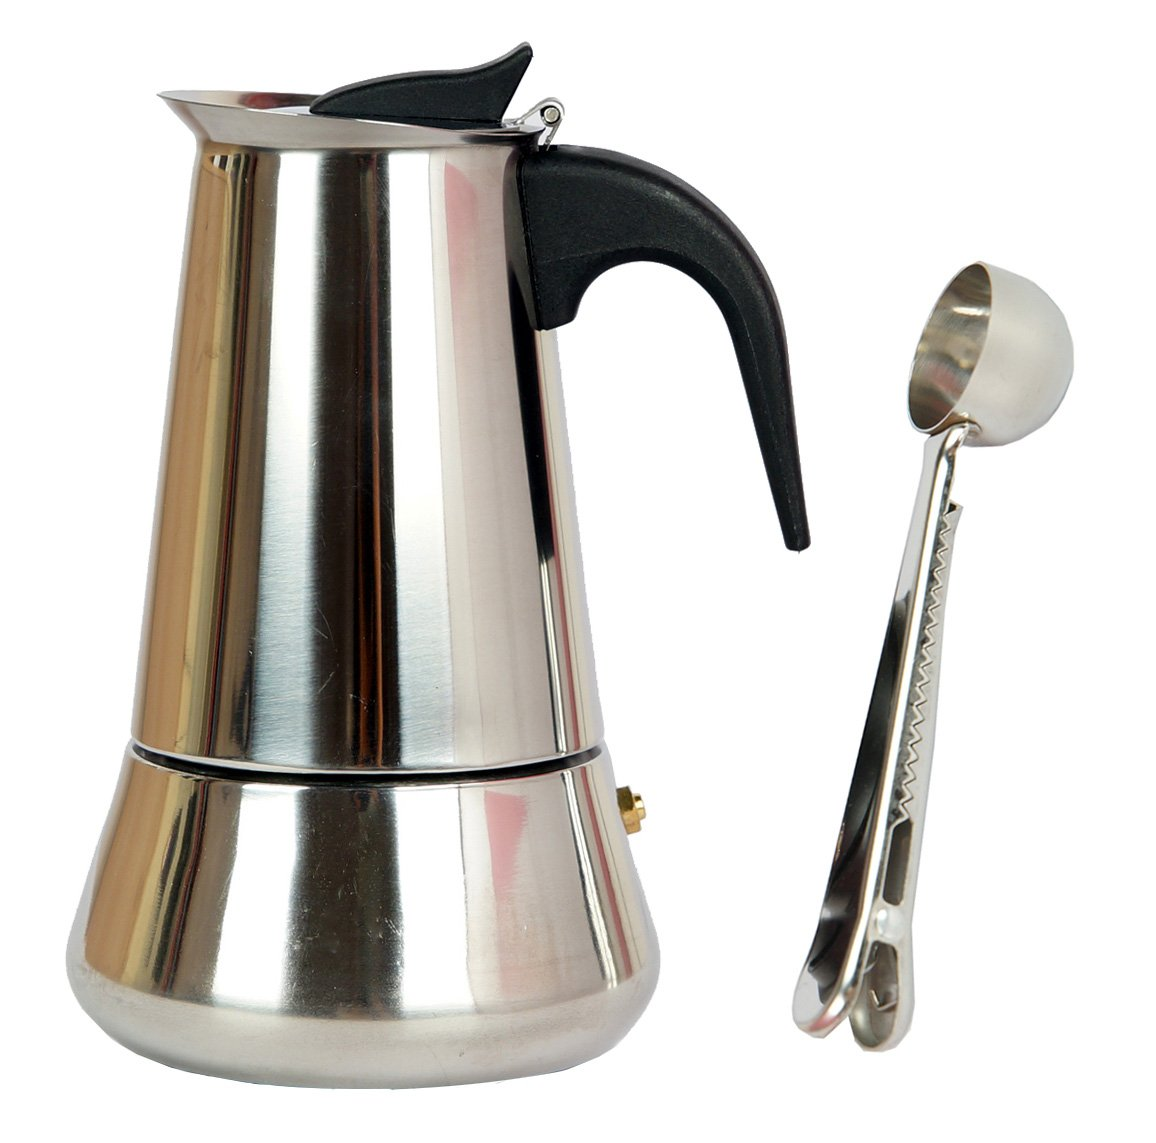 Mykumi Moka Pot 9 Cup Espresso Maker, Stainless Steel for Gas, Electric and Ceramic Stovetop with Coffee Spoon (9 Cup)